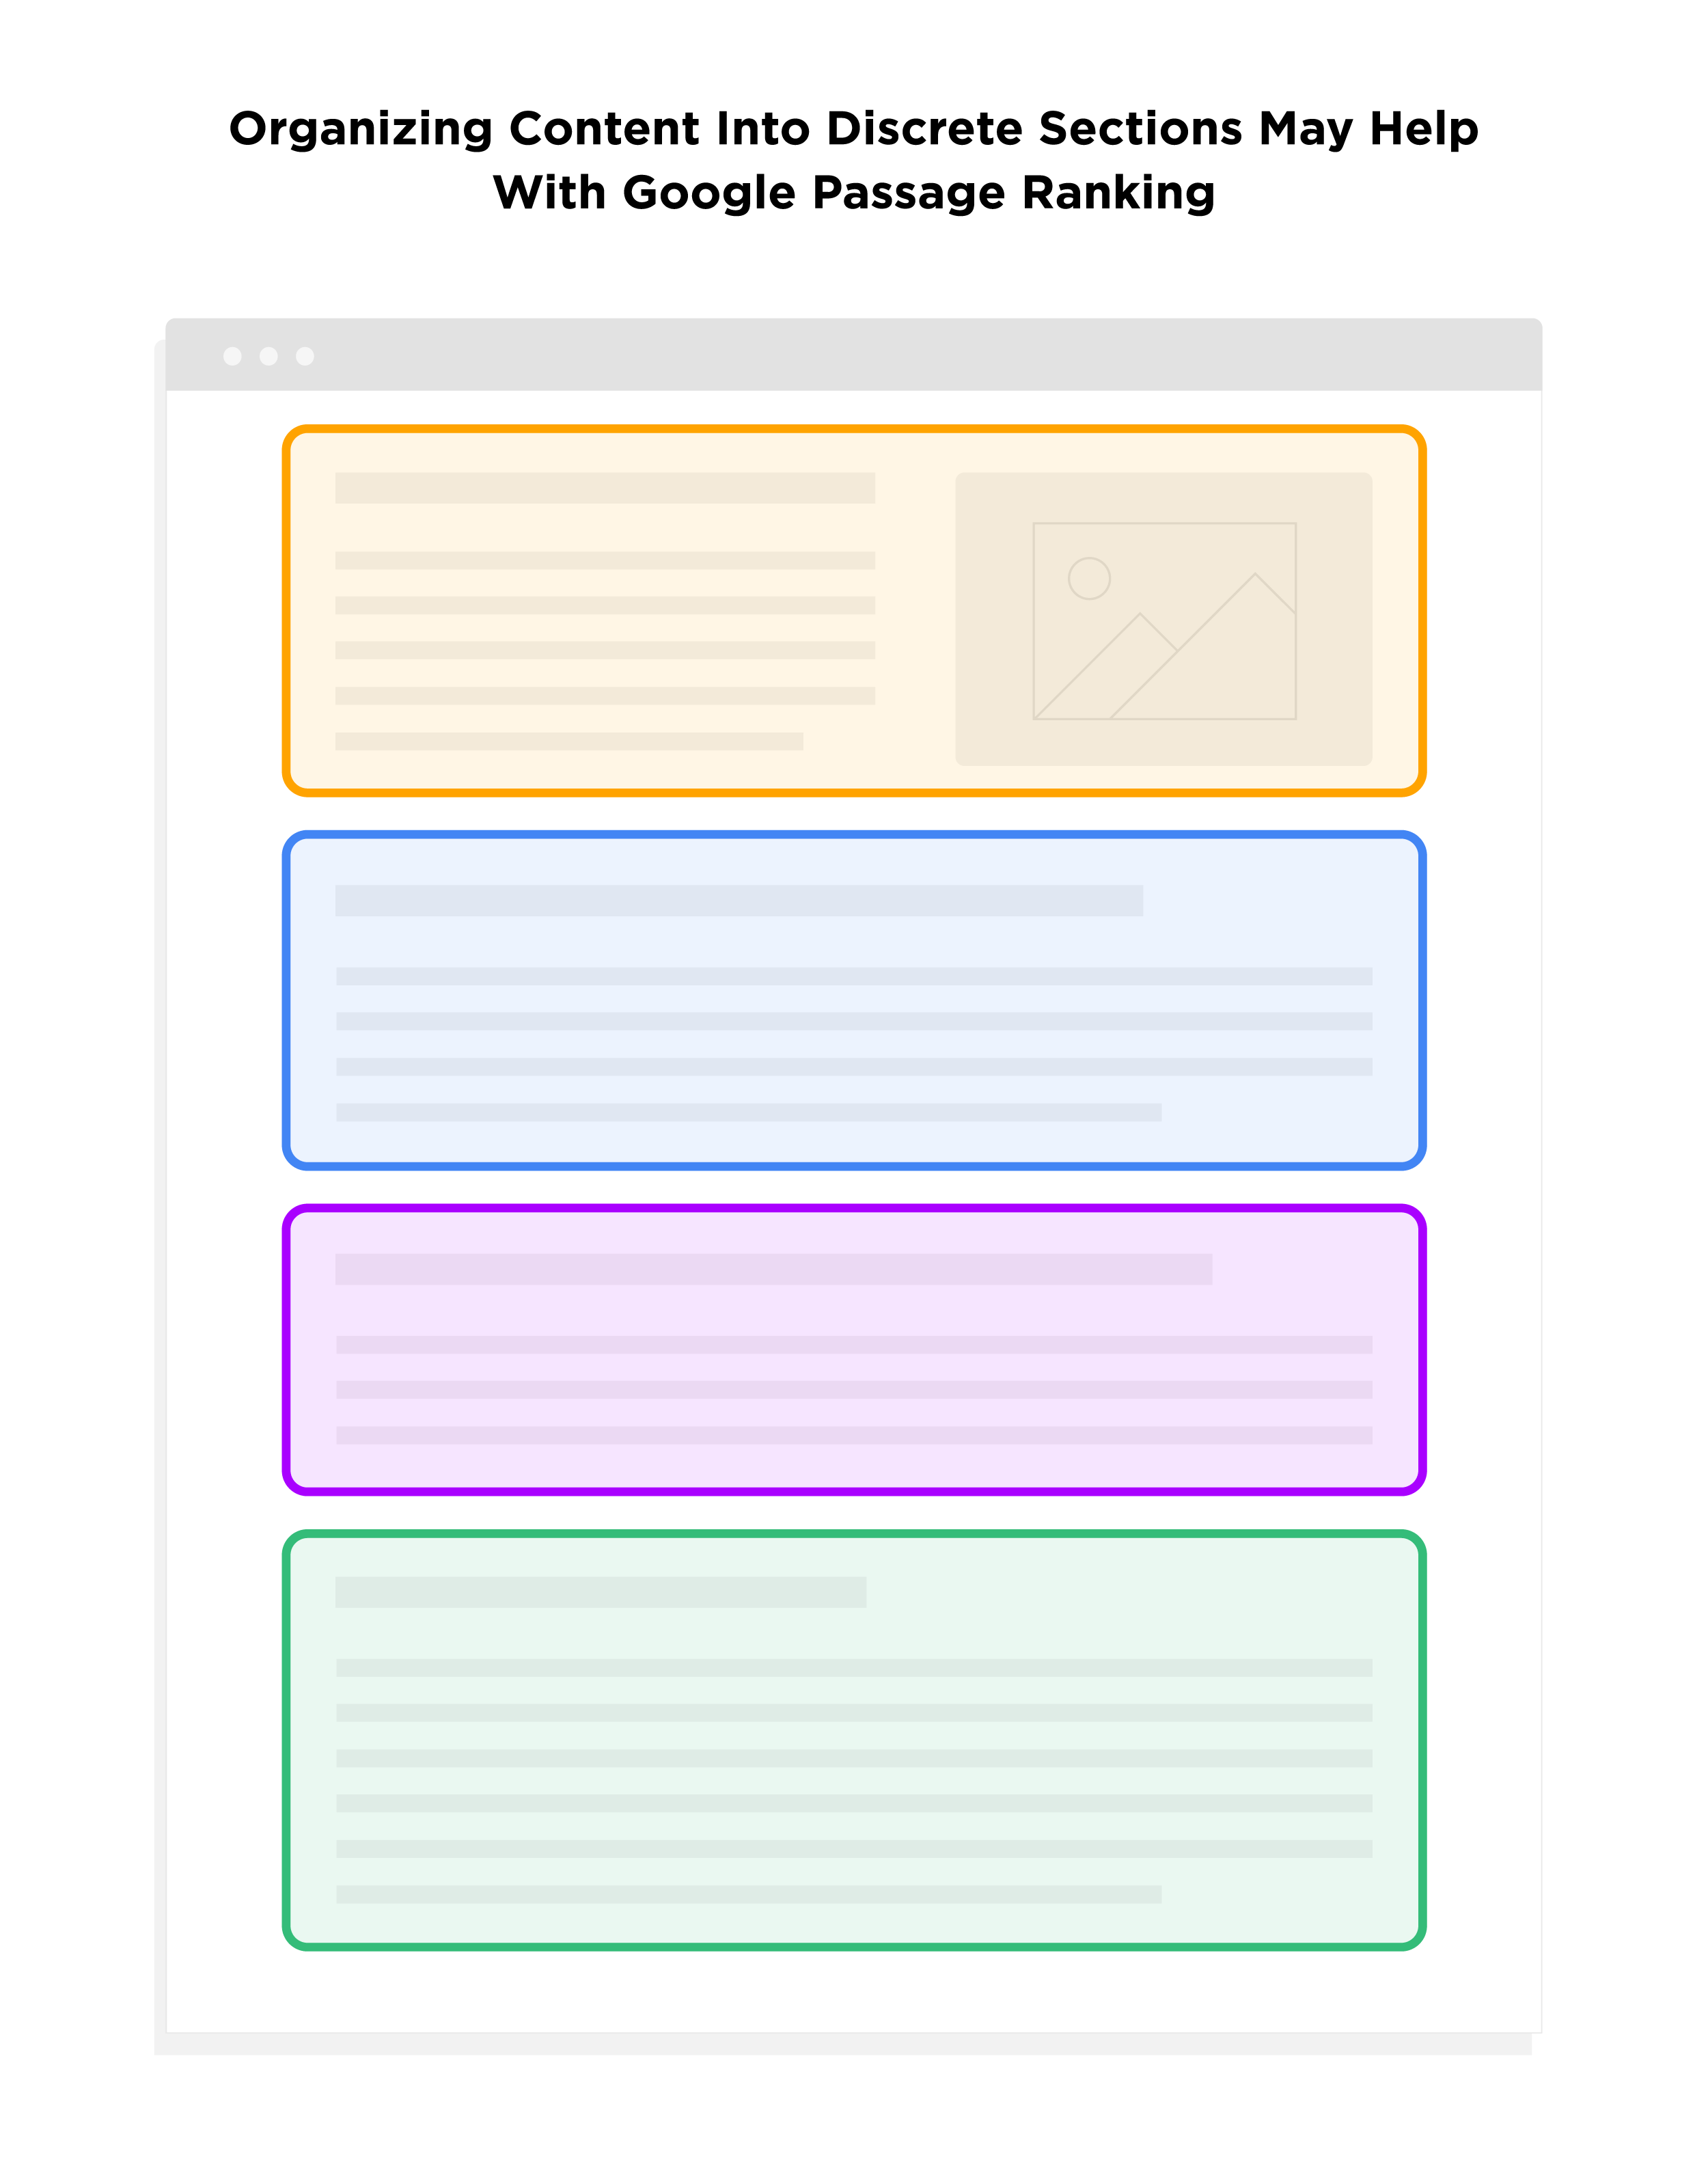 Organizing content into discrete sections may help with Google passage ranking